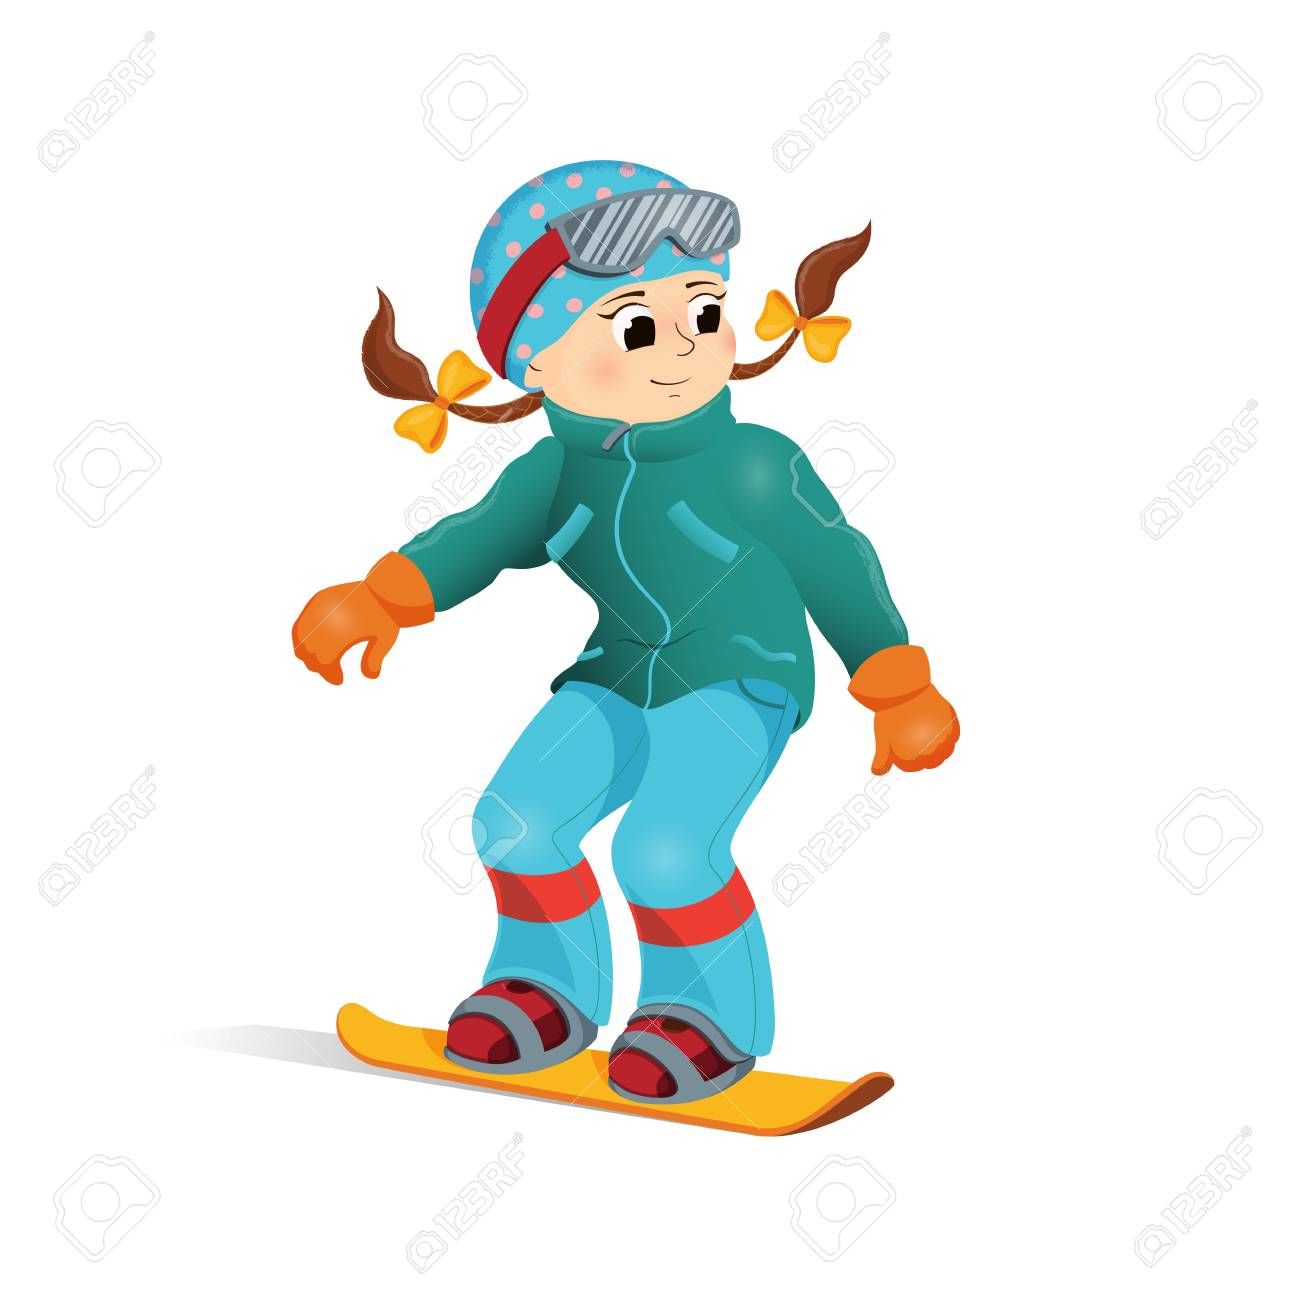 Happy Girl In Warm Clothes Snowboarding Downhill Winter Sport Royalty Free Cliparts Vectors And Stock Illustration Image 90159223